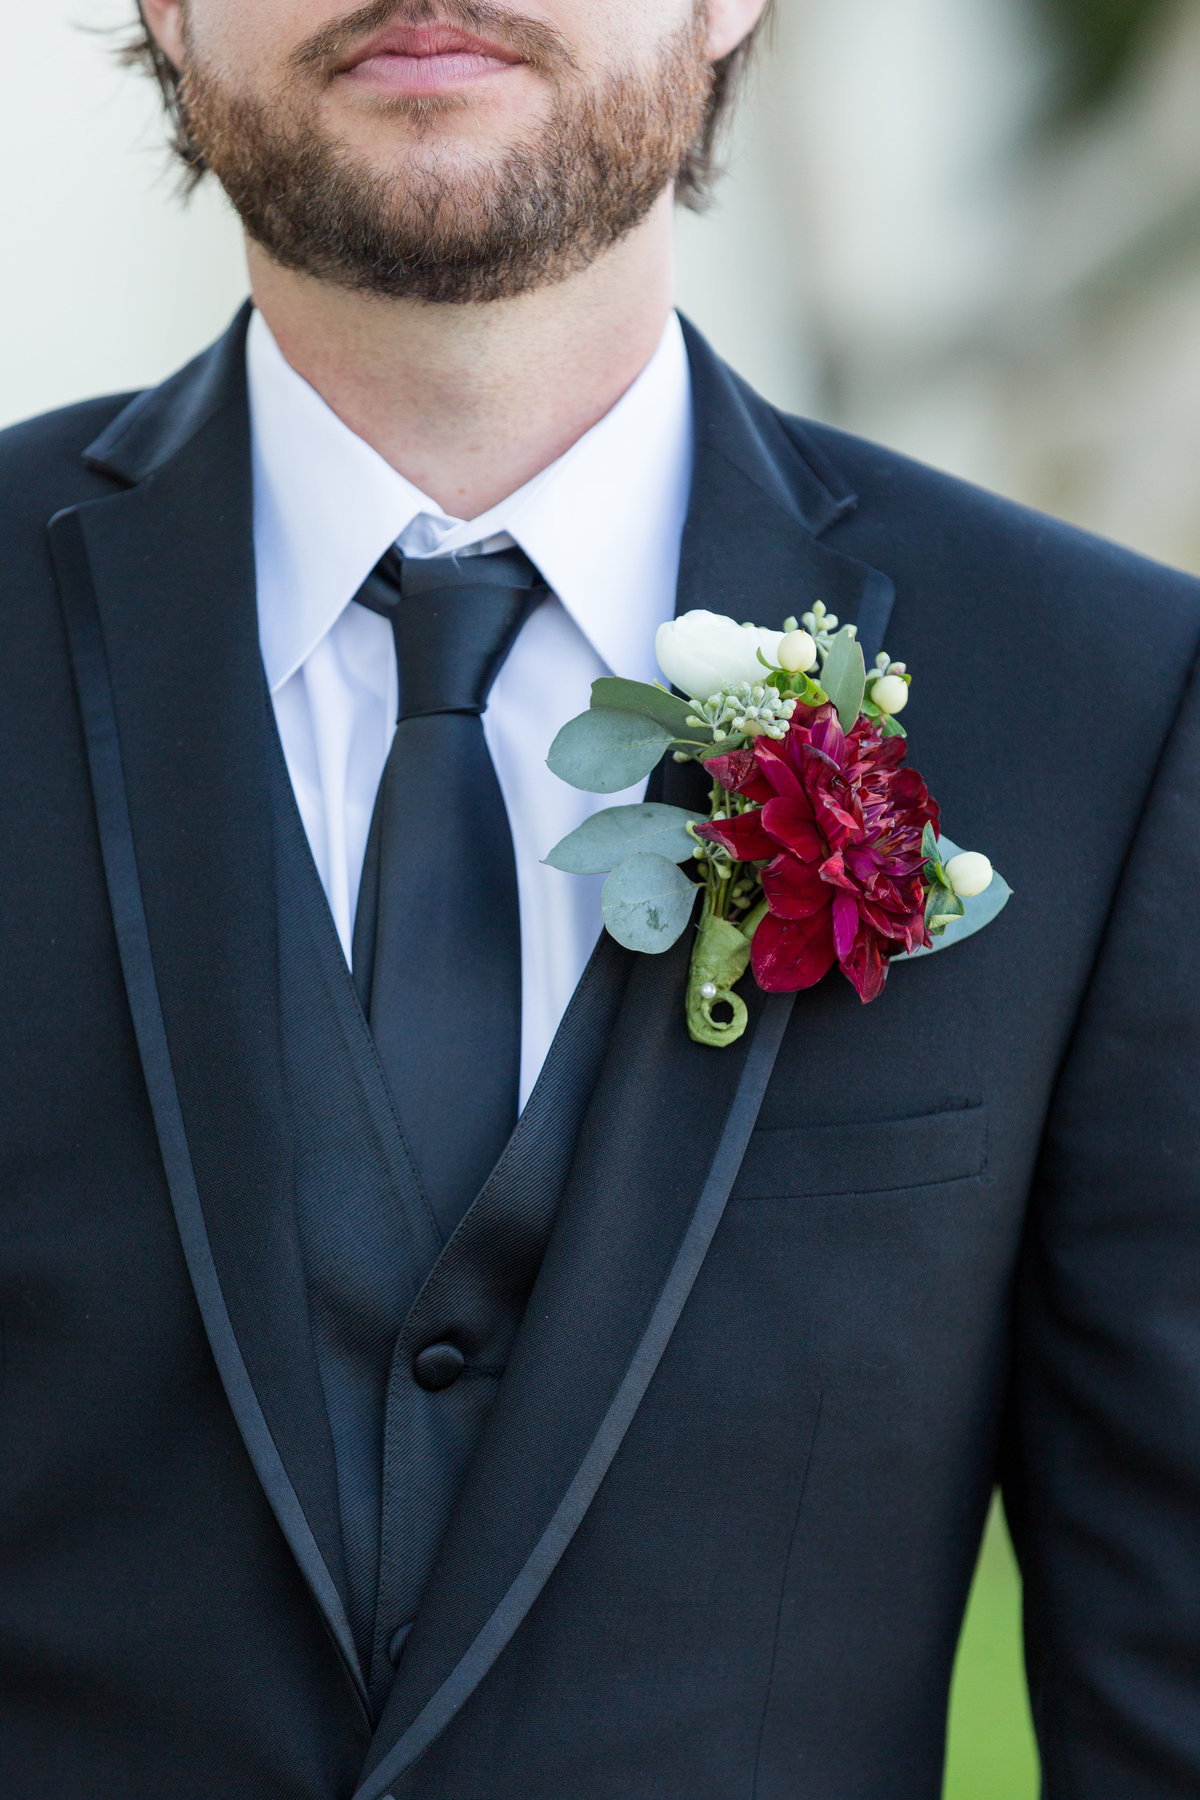 Dapper Groom Estate Wedding Details, Rancho Mirage, CA